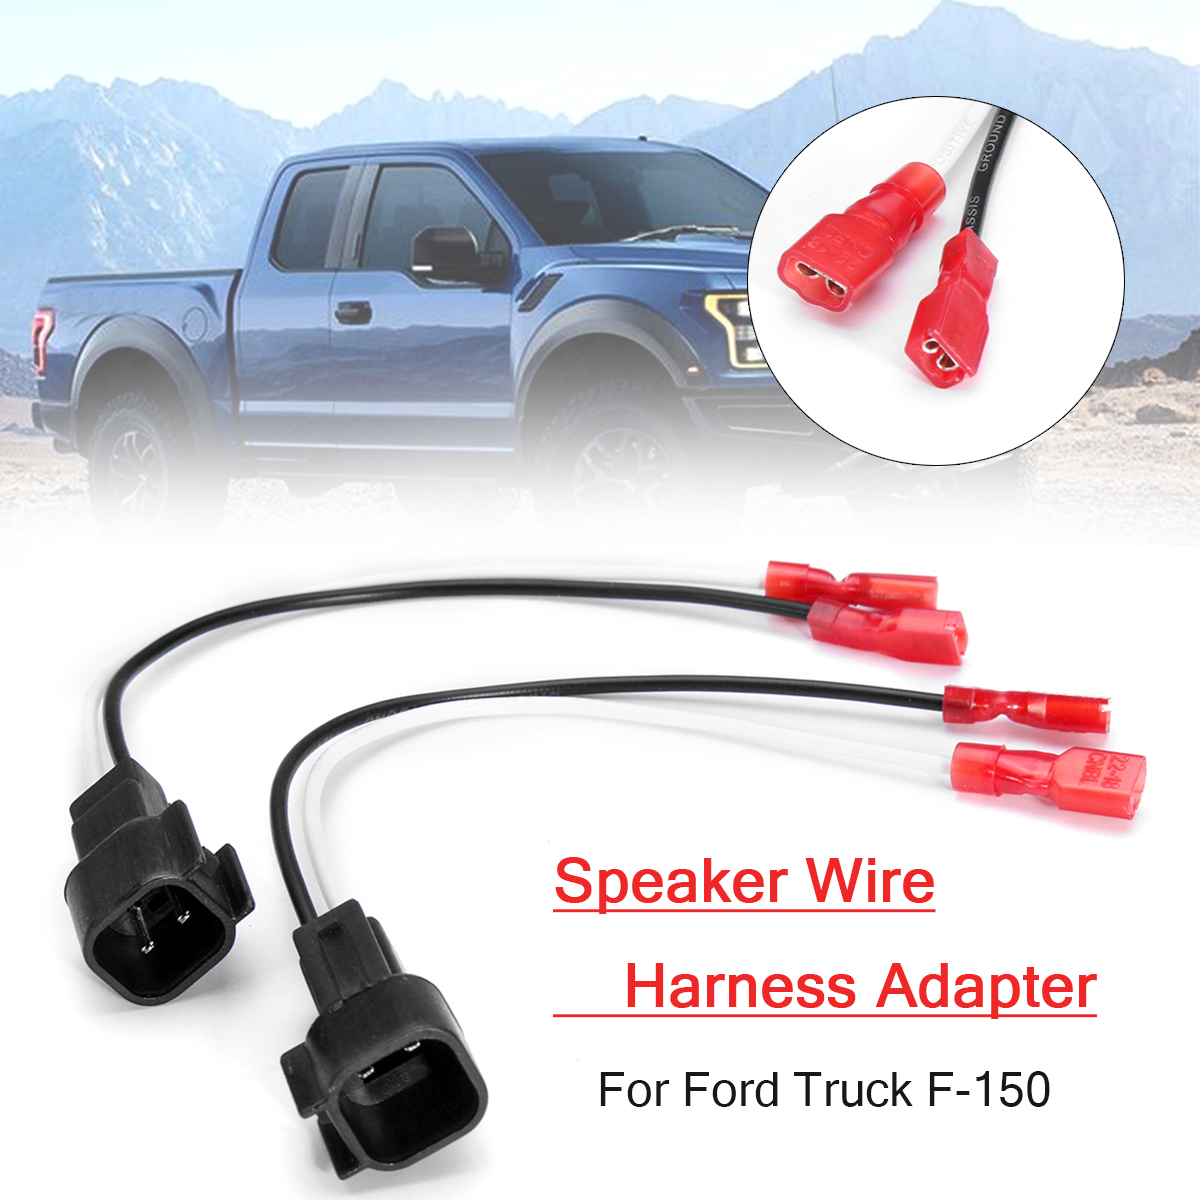 Radio Speaker Wire Harness Adapter Plug Metra 72 5600 for Ford Truck F  150-in Cables, Adapters & Sockets from Automobiles & Motorcycles on  Aliexpress.com ...